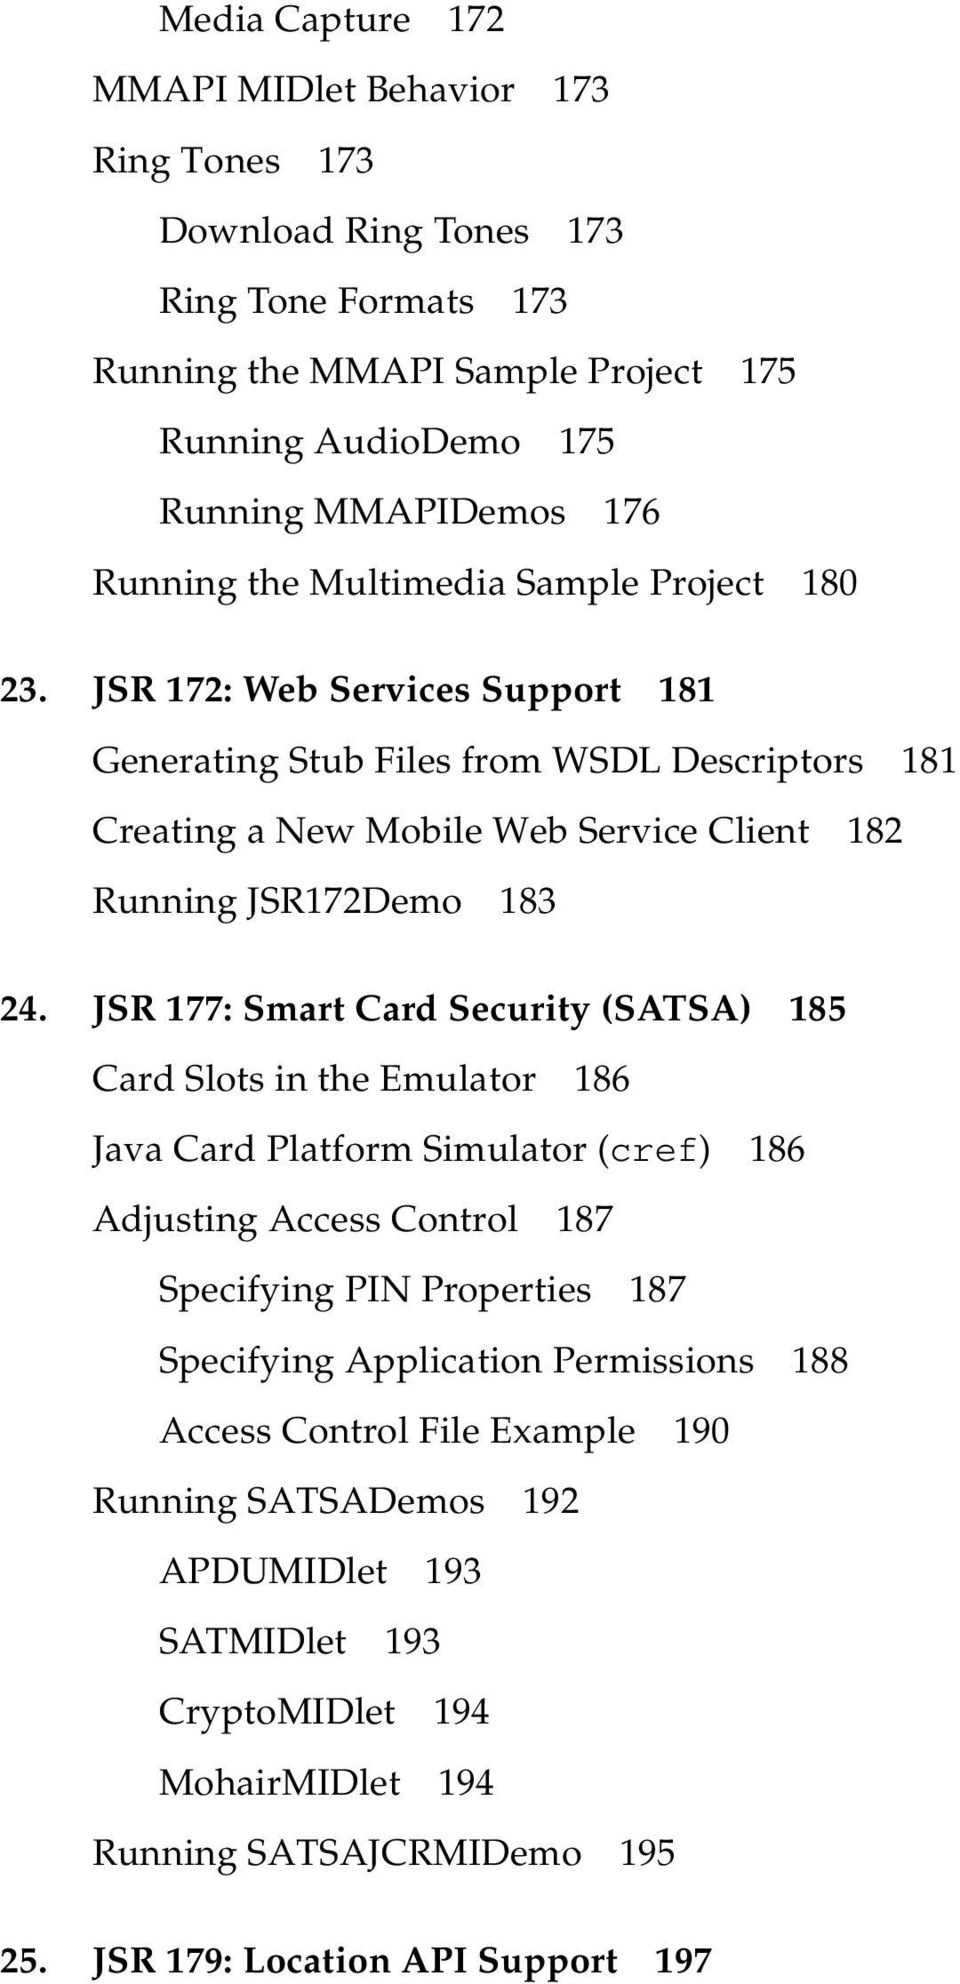 JSR 177: Smart Card Security (SATSA) 185 Card Slots in the Emulator 186 Java Card Platform Simulator (cref) 186 Adjusting Access Control 187 Specifying PIN Properties 187 Specifying Application